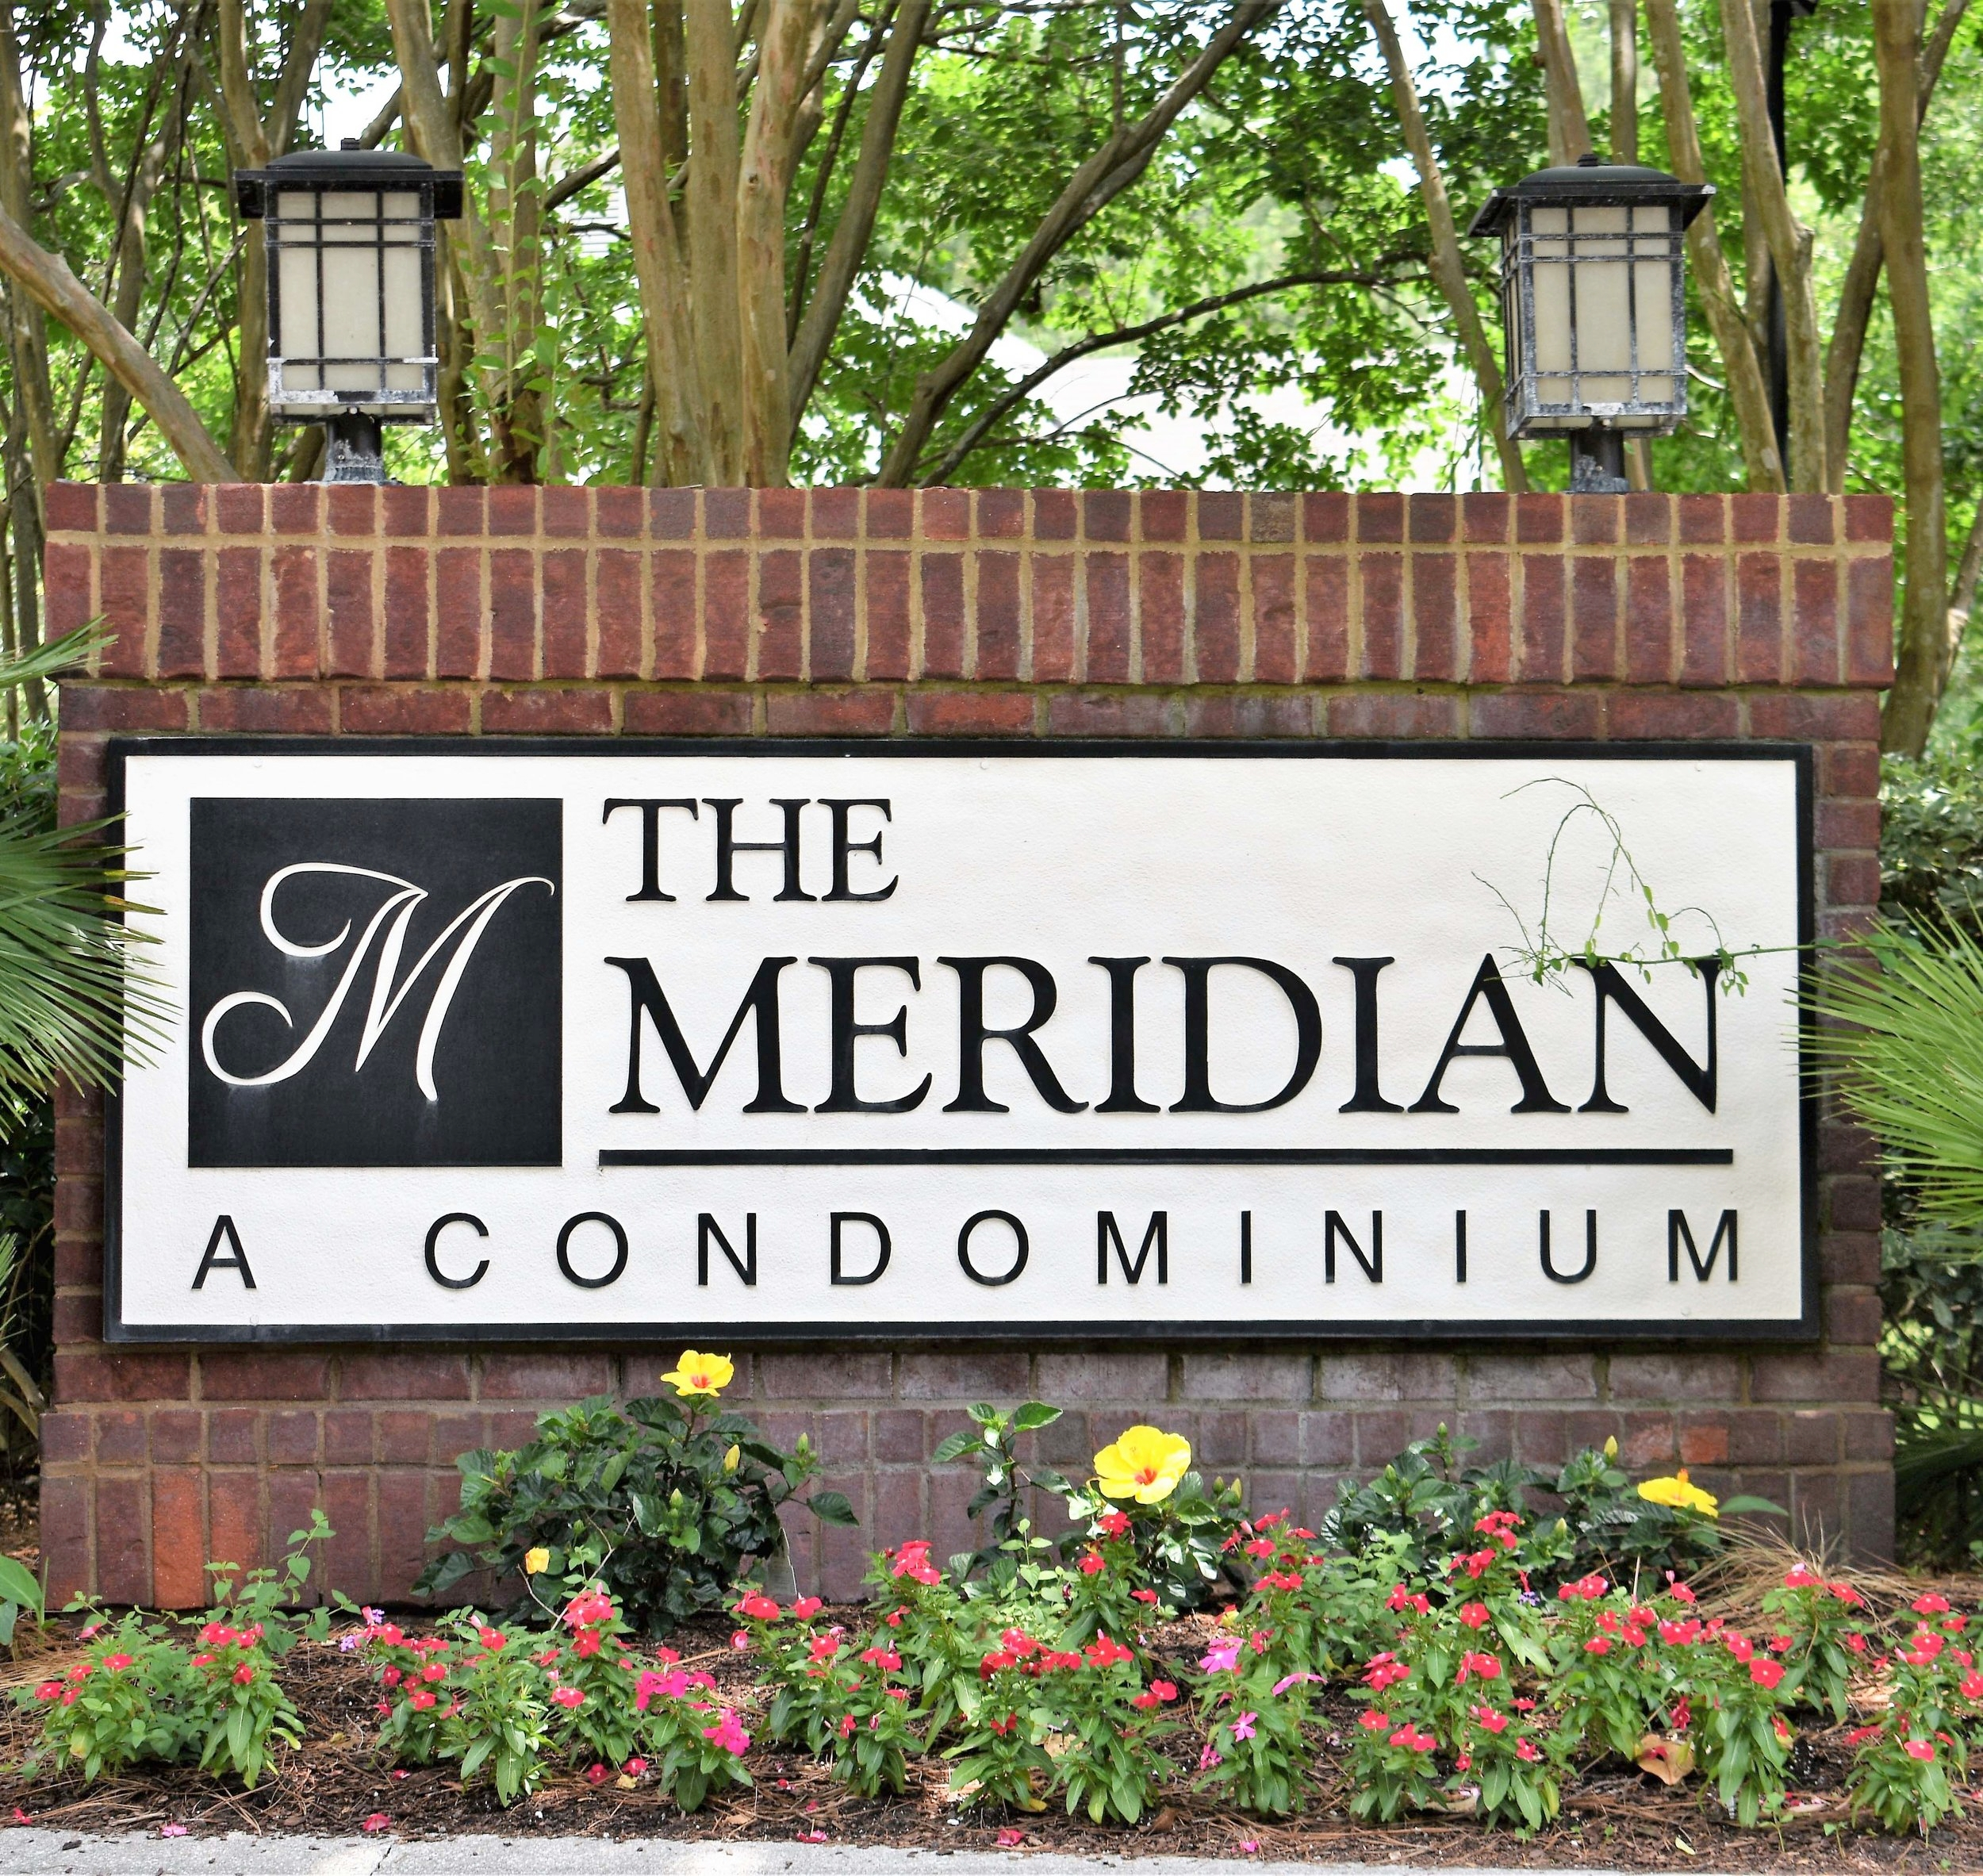 in Mount Pleasant, SC - The Meridian is a condominium community of 256 individually owned, 1, 2 and 3 bedroom condos on over 32 landscaped acres. Our Clubhouse/Administrative office has a spacious meeting room, big-screen TV, library, and hosts community events and club meetings. There is a well equipped exercise room and a laundry facility. Our Home Owners Association fees are based on condo unit size and range from $205 to $460 per month and include water, sewer, pest control, exterior maintenance, property liability and flood insurance, and access to all amenities including fish-stocked ponds, tennis and basketball courts, picnic grills, children's playground, volleyball court, plus a car care/wash station. There is boat parking for a small fee. Our beautiful pool, clubhouse porches and decks are a center of warm weather activities. The Meridian is 3 miles over the Isle of Palms Connector to the beaches, and 6 miles to downtown Charleston.